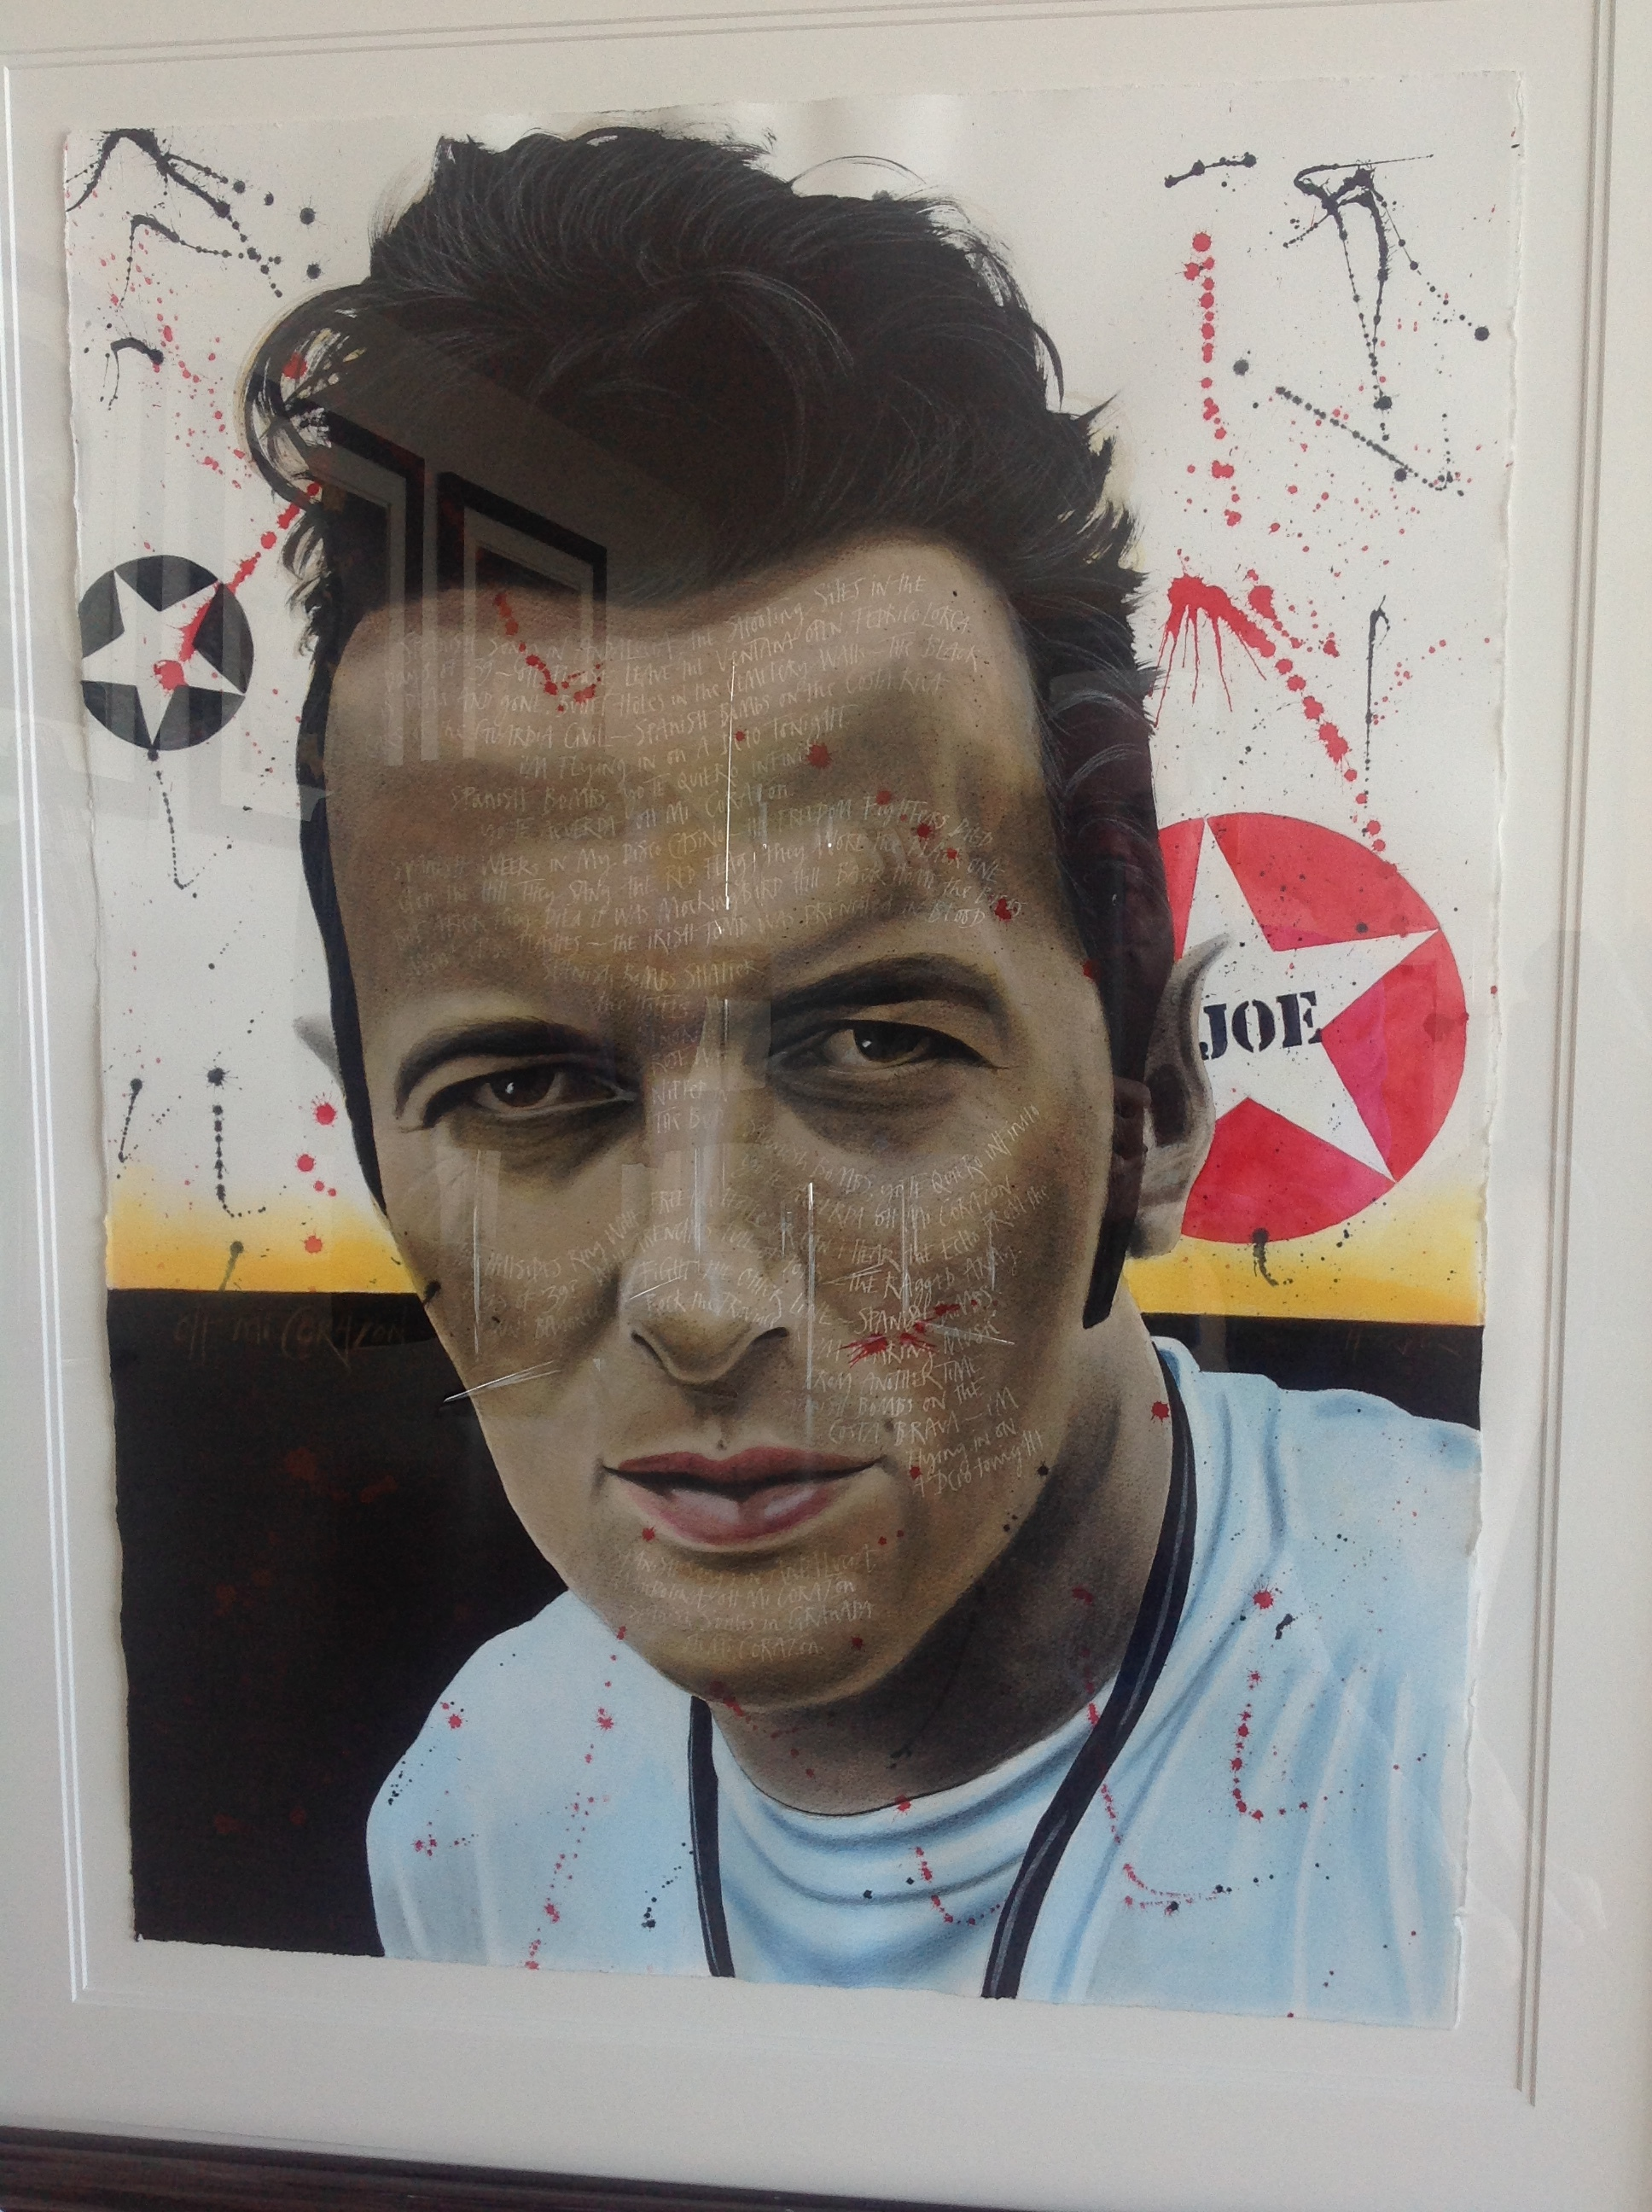 Joe Strummer mounted.JPG